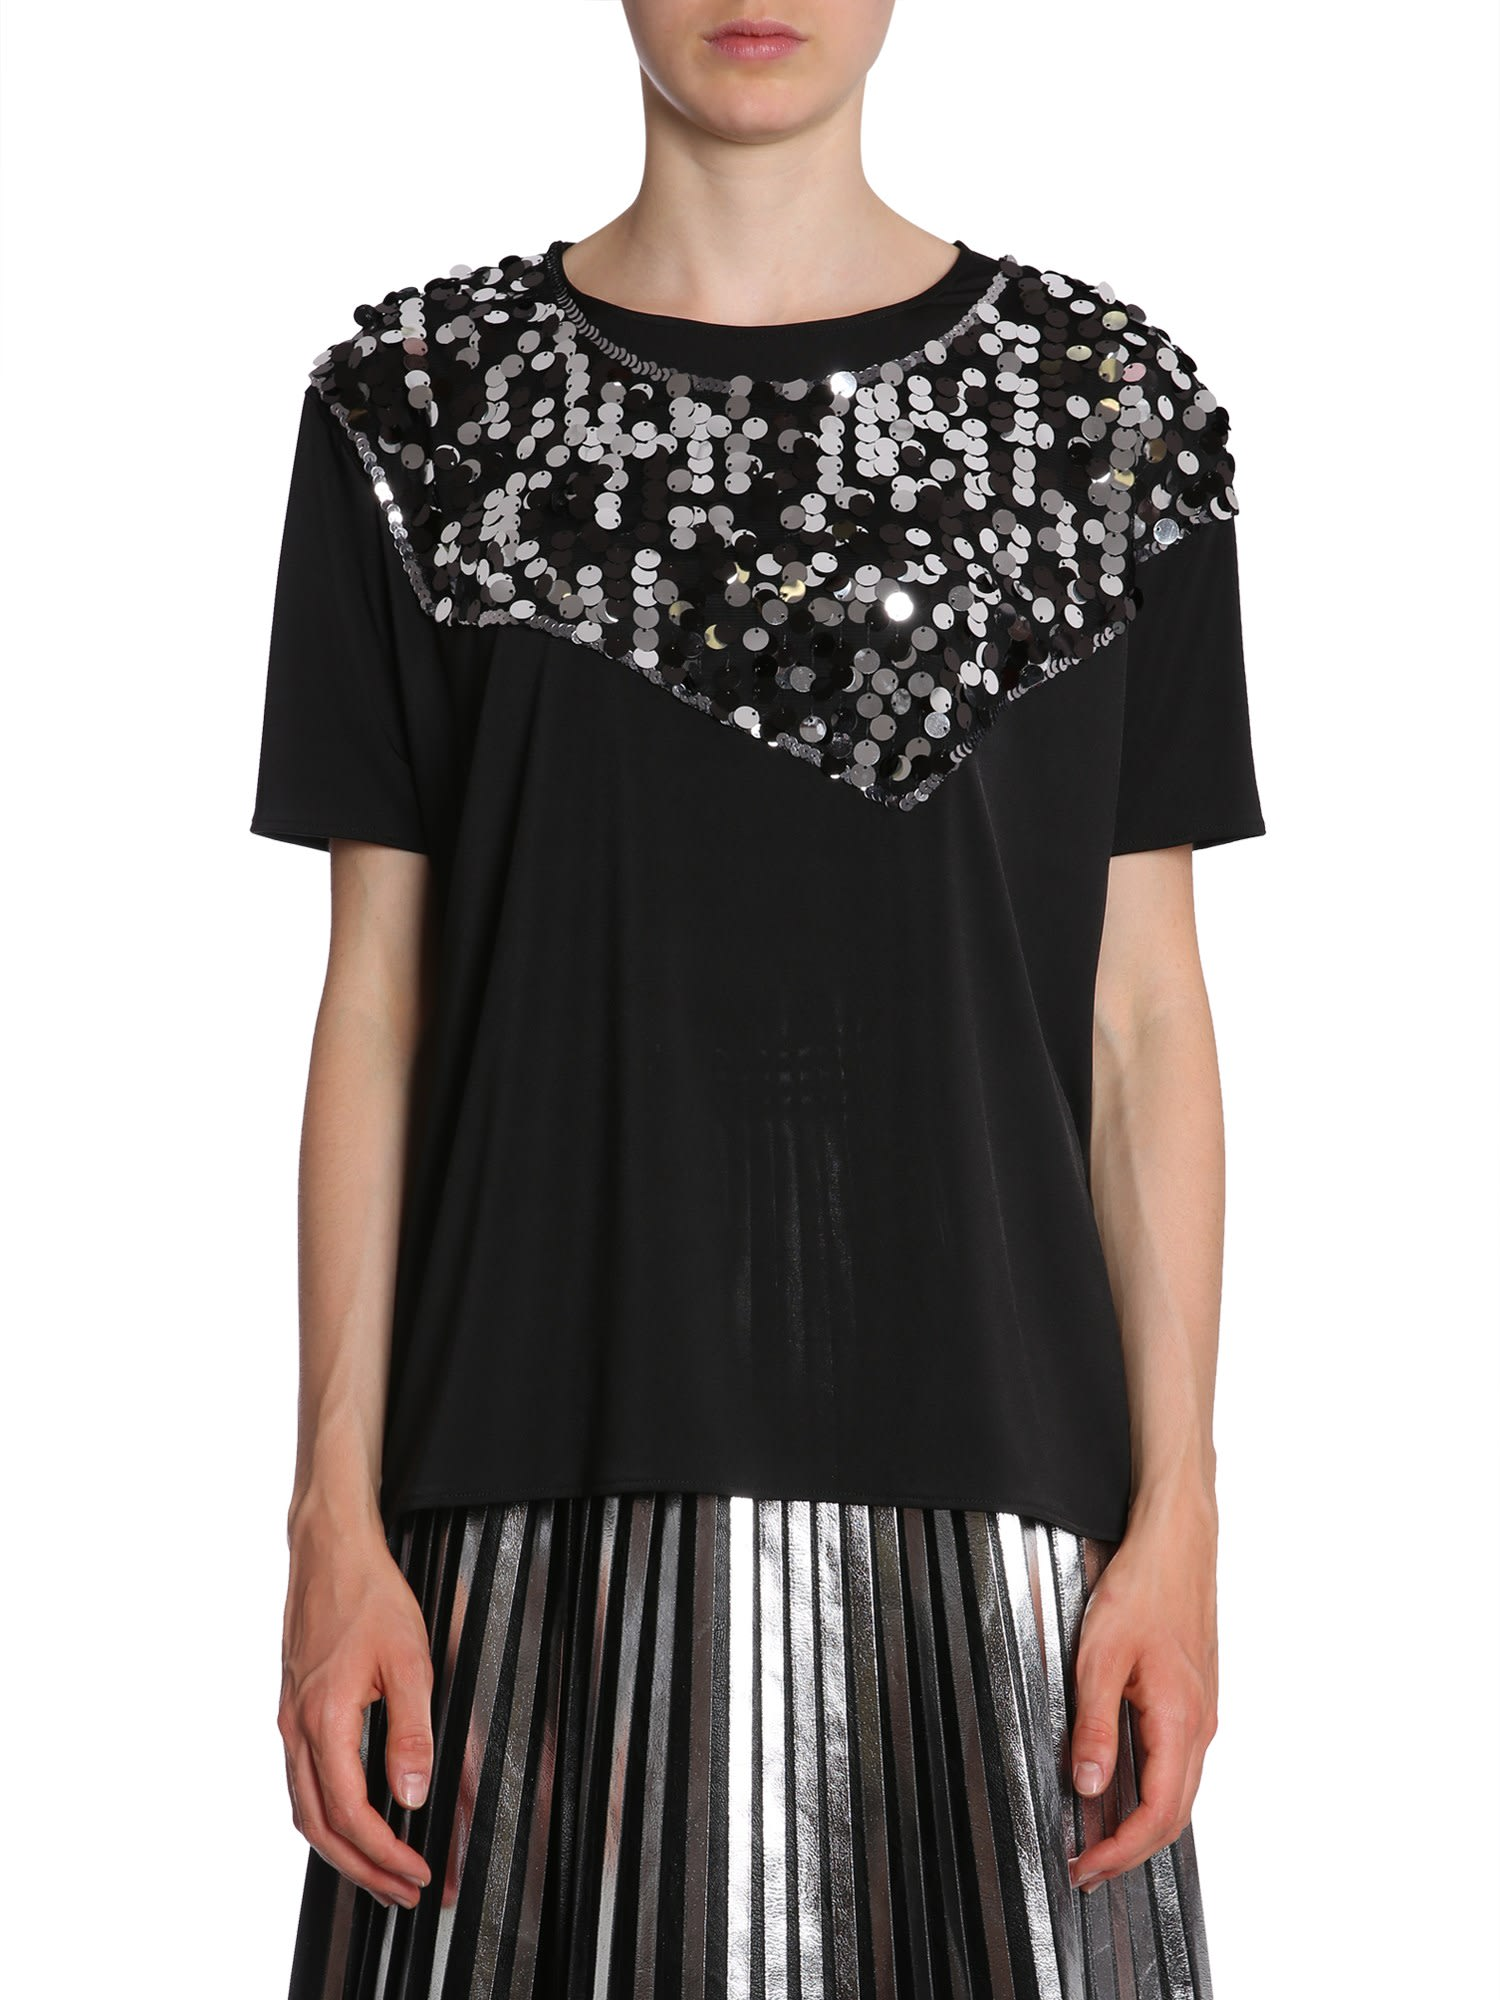 MM6 Maison Margiela T-shirt With Sequin Insert